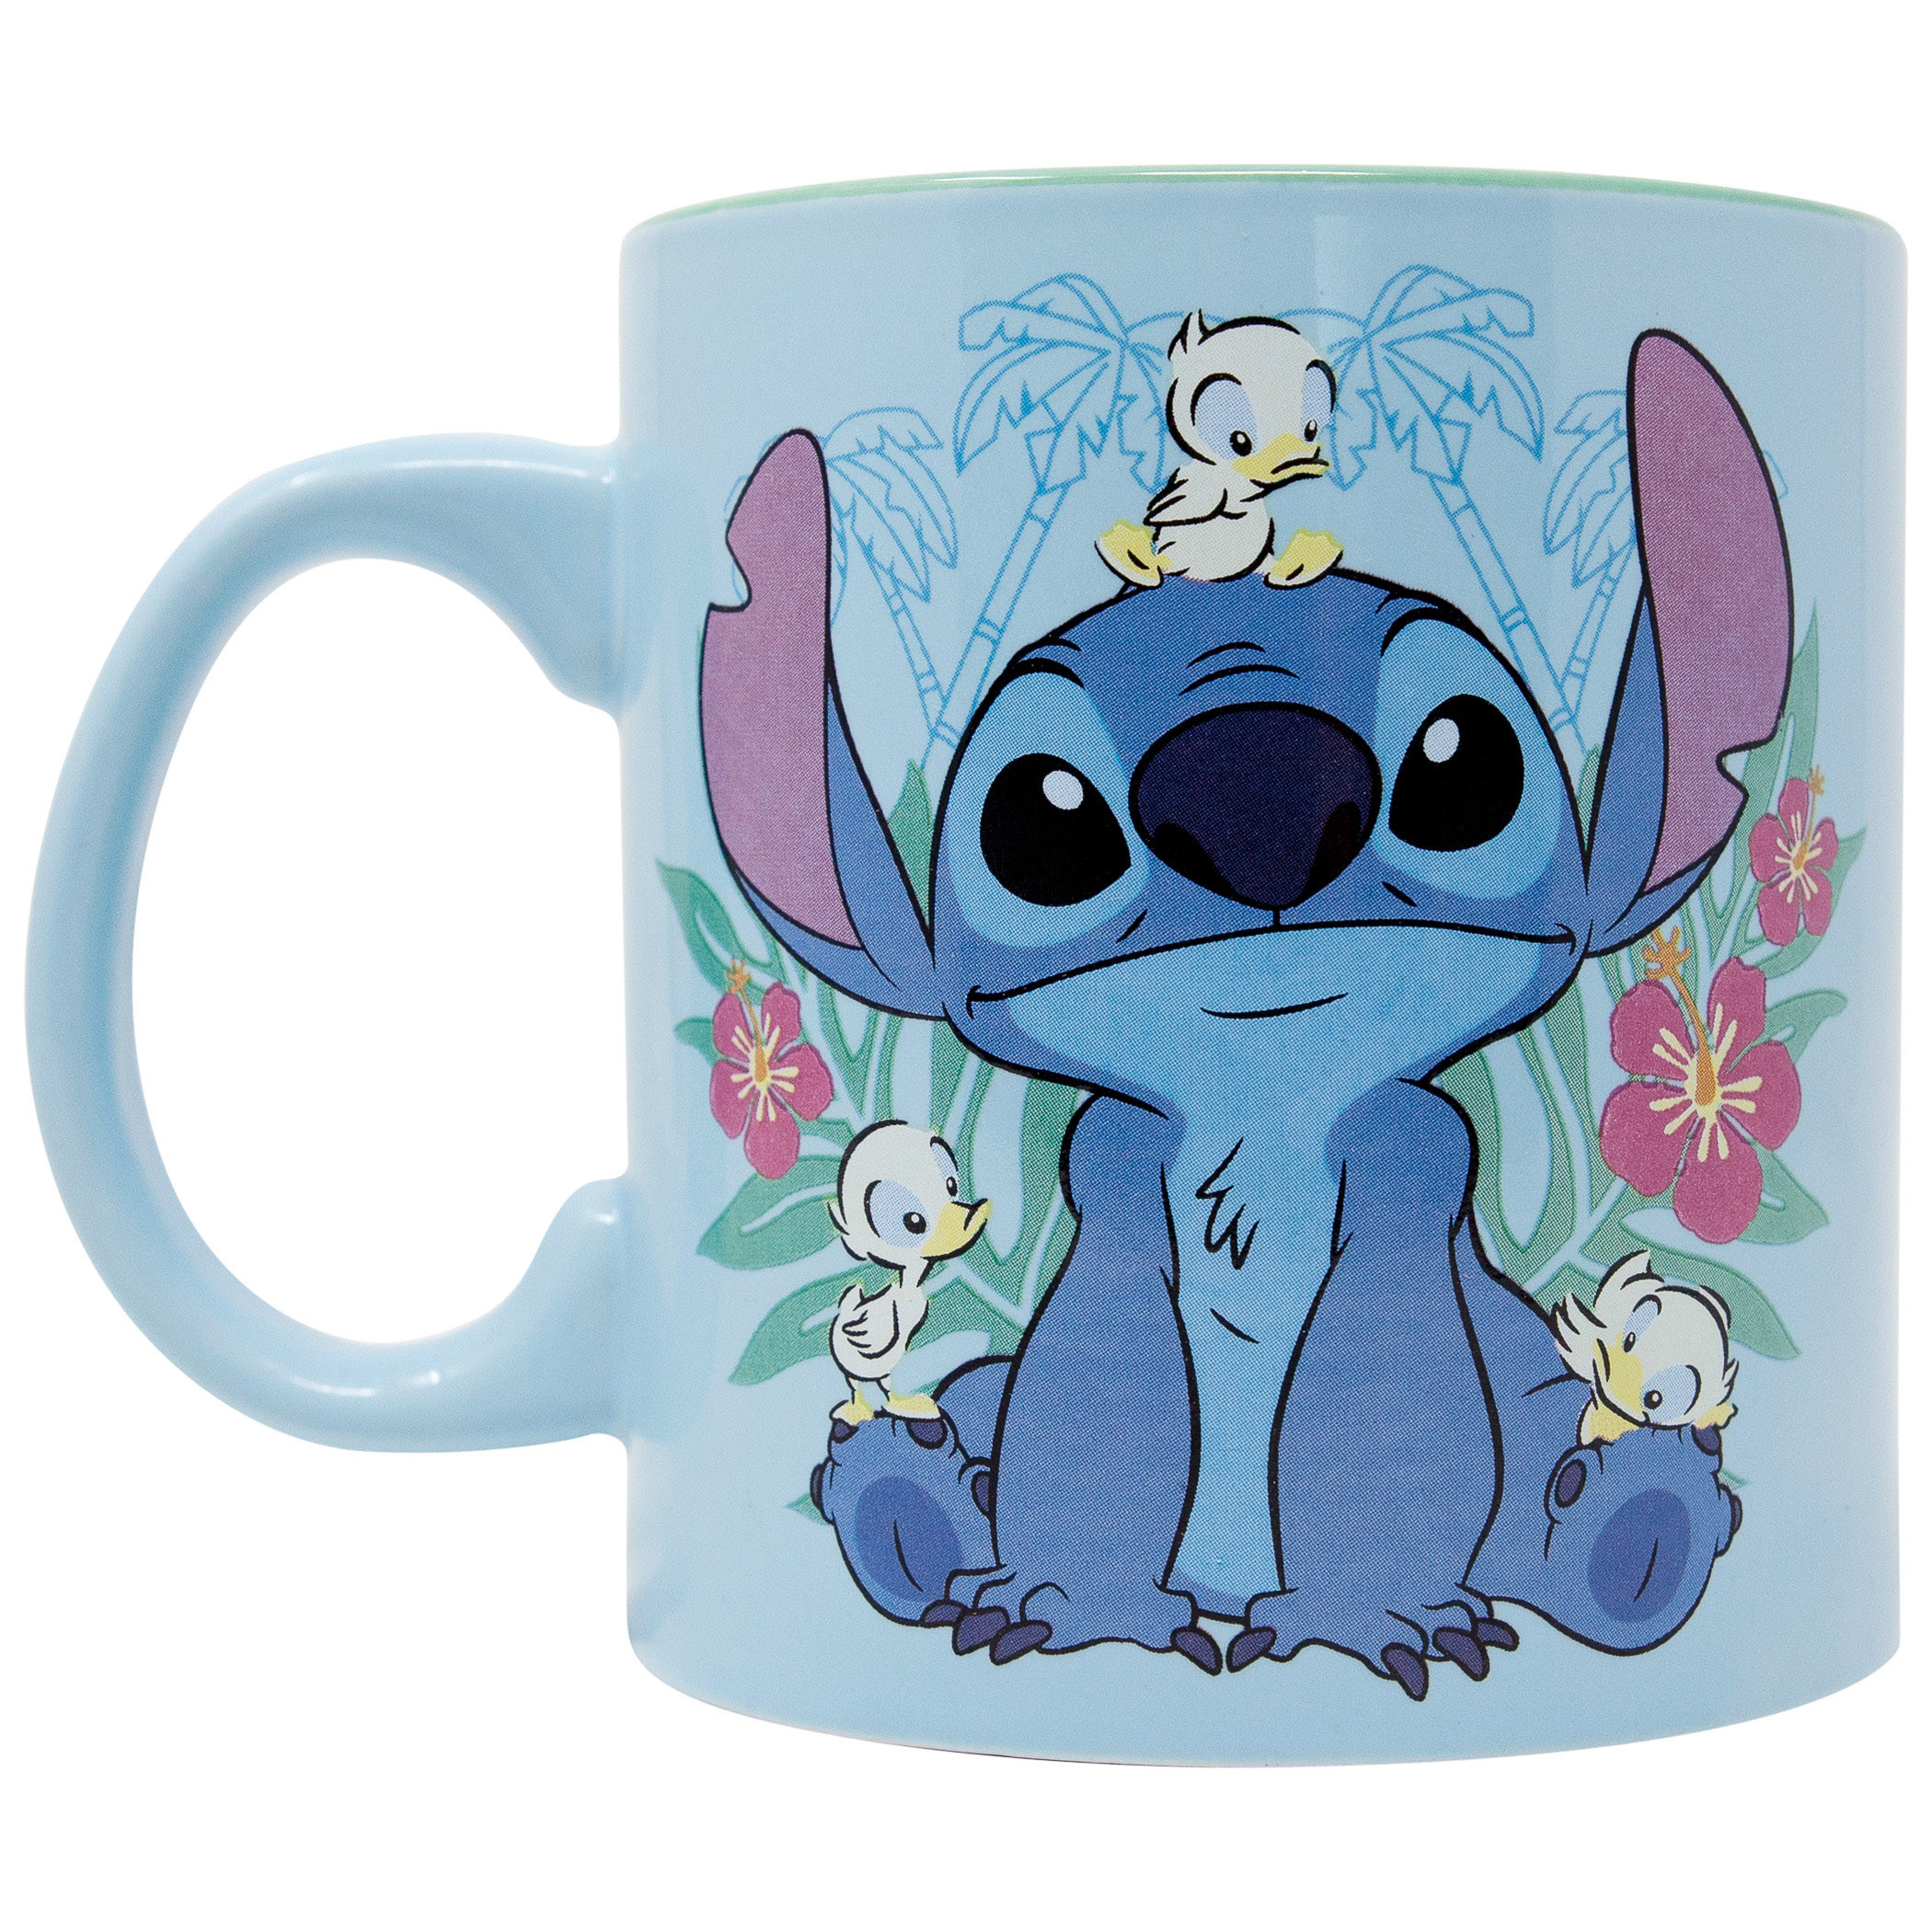 Lilo And Stitch Floral Duck Jumbo Ceramic Mug